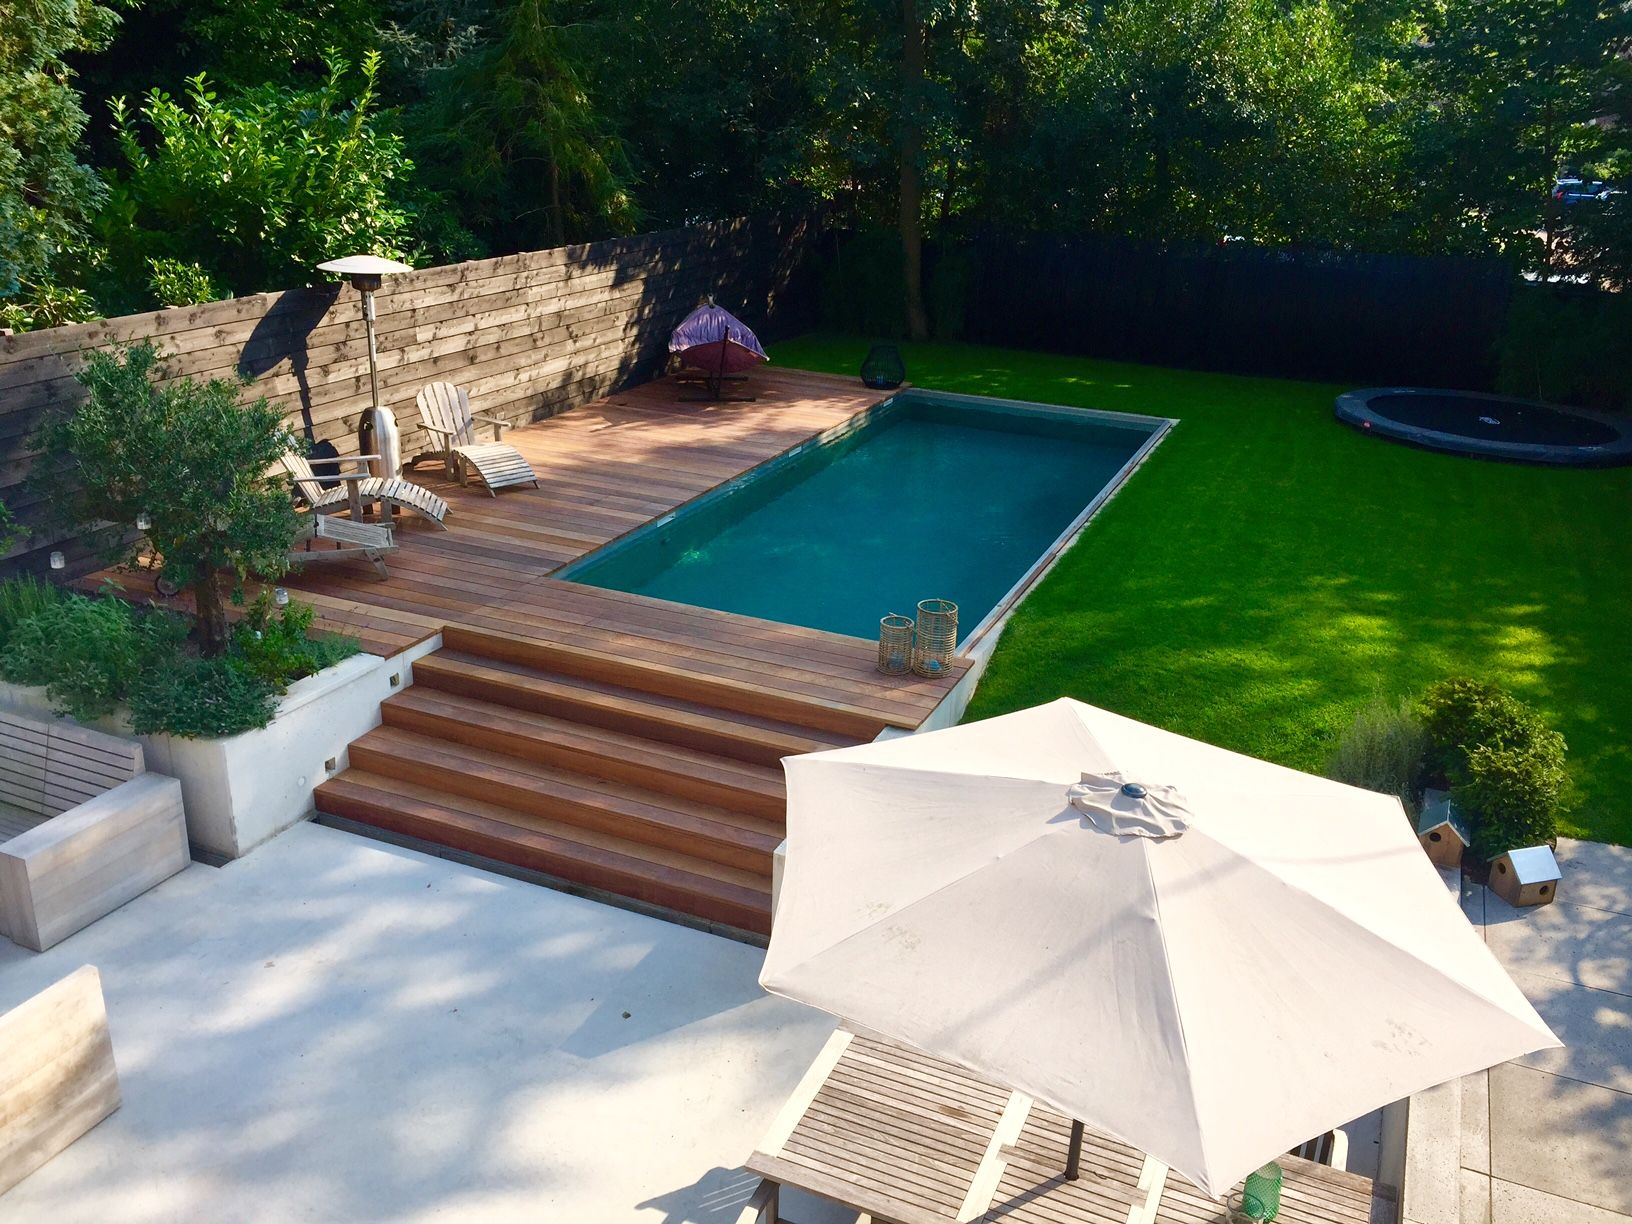 Pool & surrounding landscape for home: inspiration in 2018